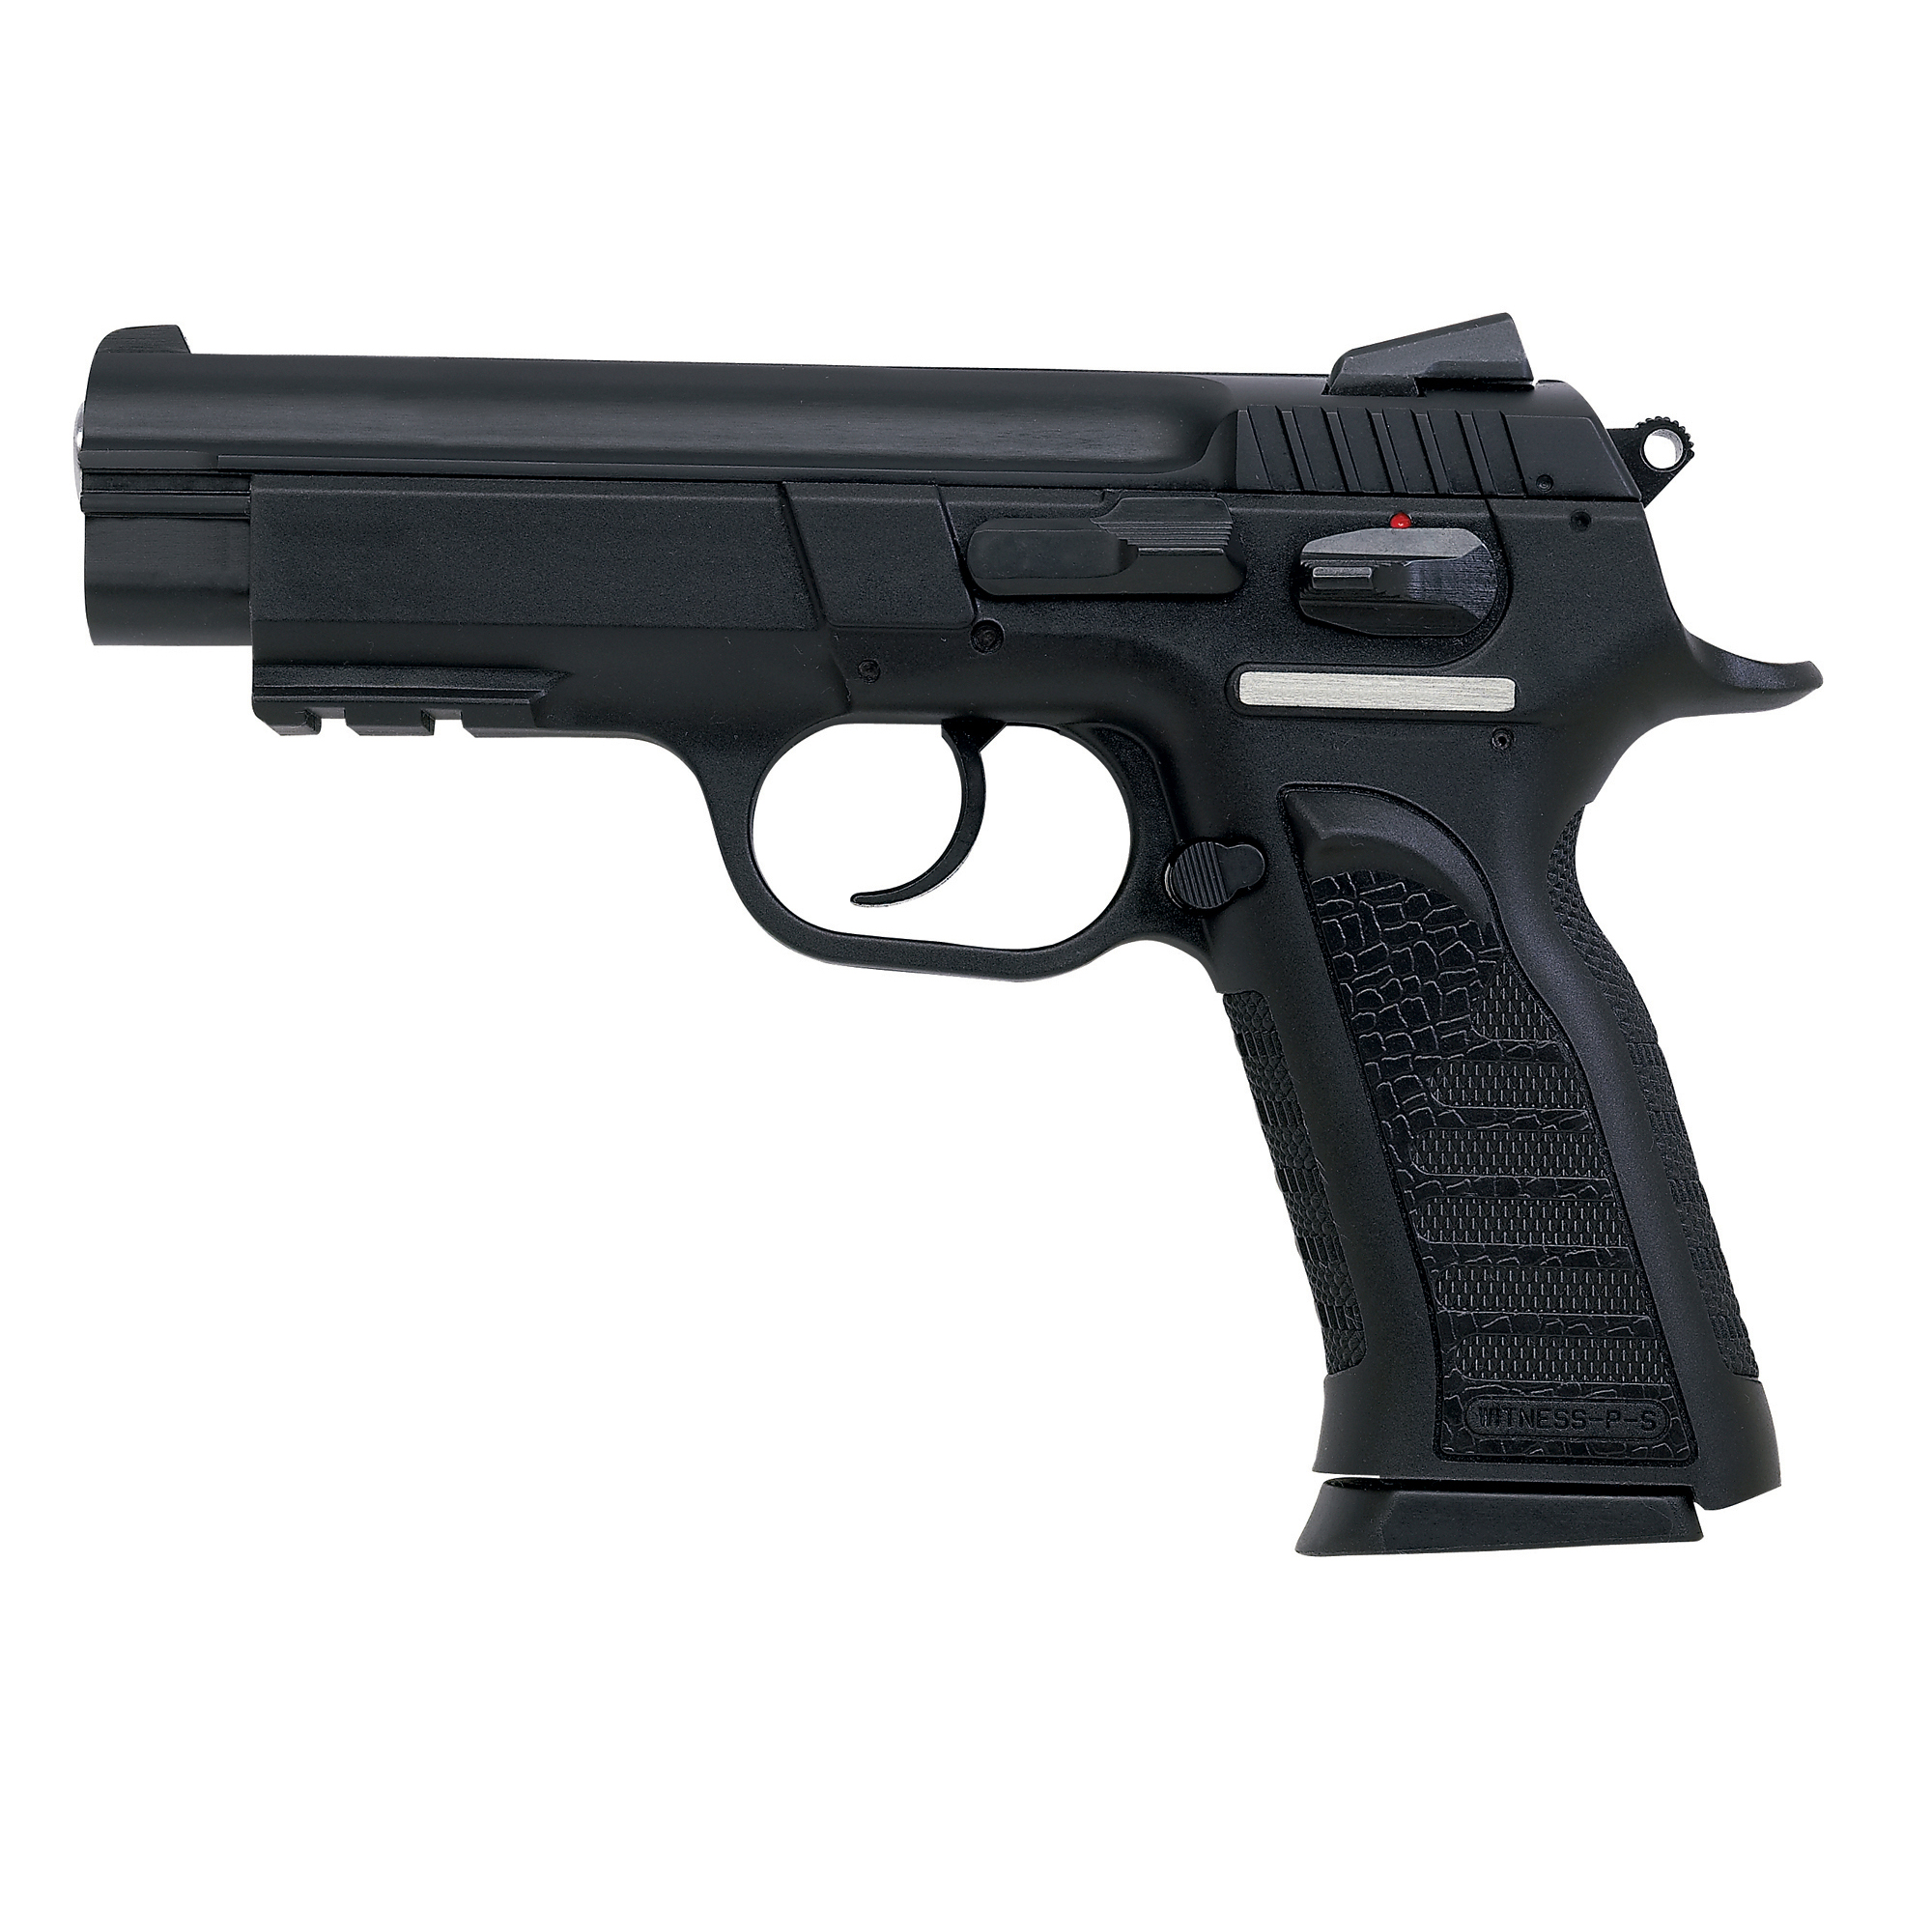 "Say you want a pistol for self defense"" home defense or lawful concealed carry. There are so many choices out there. You want a pistol that could be a carry gun as well as enjoyable to shoot and chambered in a caliber that can knock down an assailant. Get a Witness in polymer!"